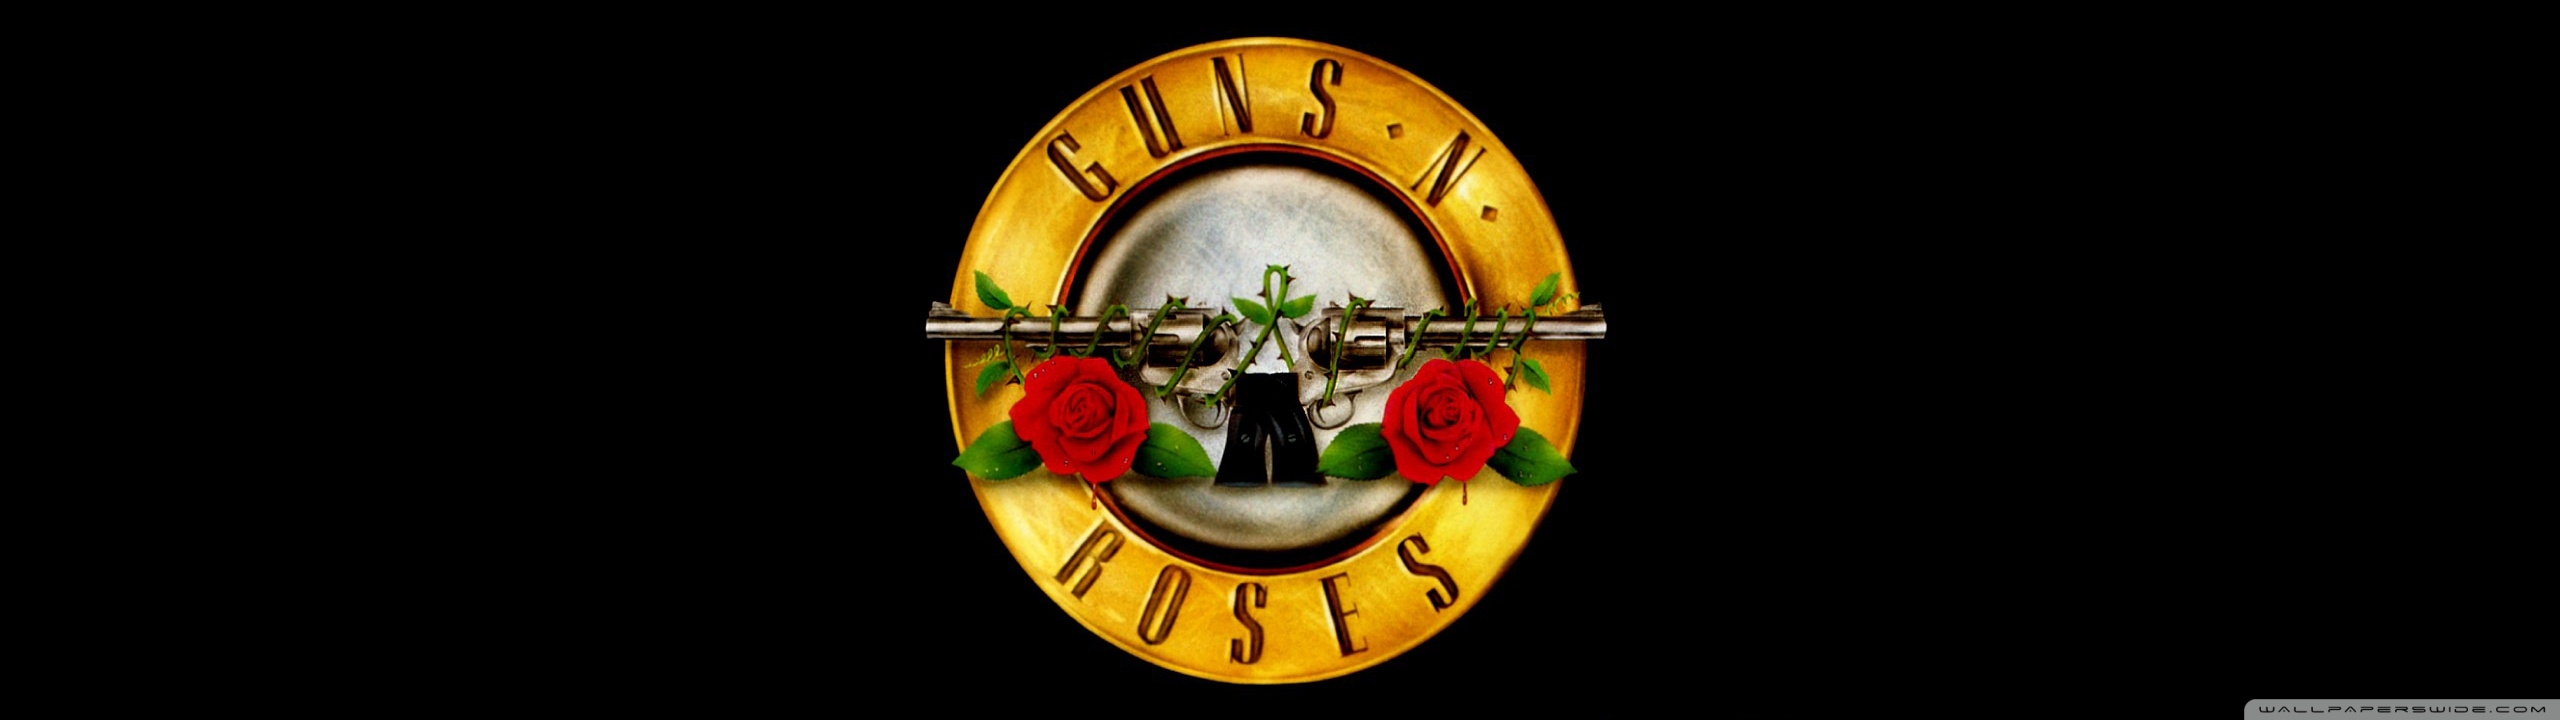 Guns n roses wallpaper hd wallpapersafari - Wallpaper guns and roses ...